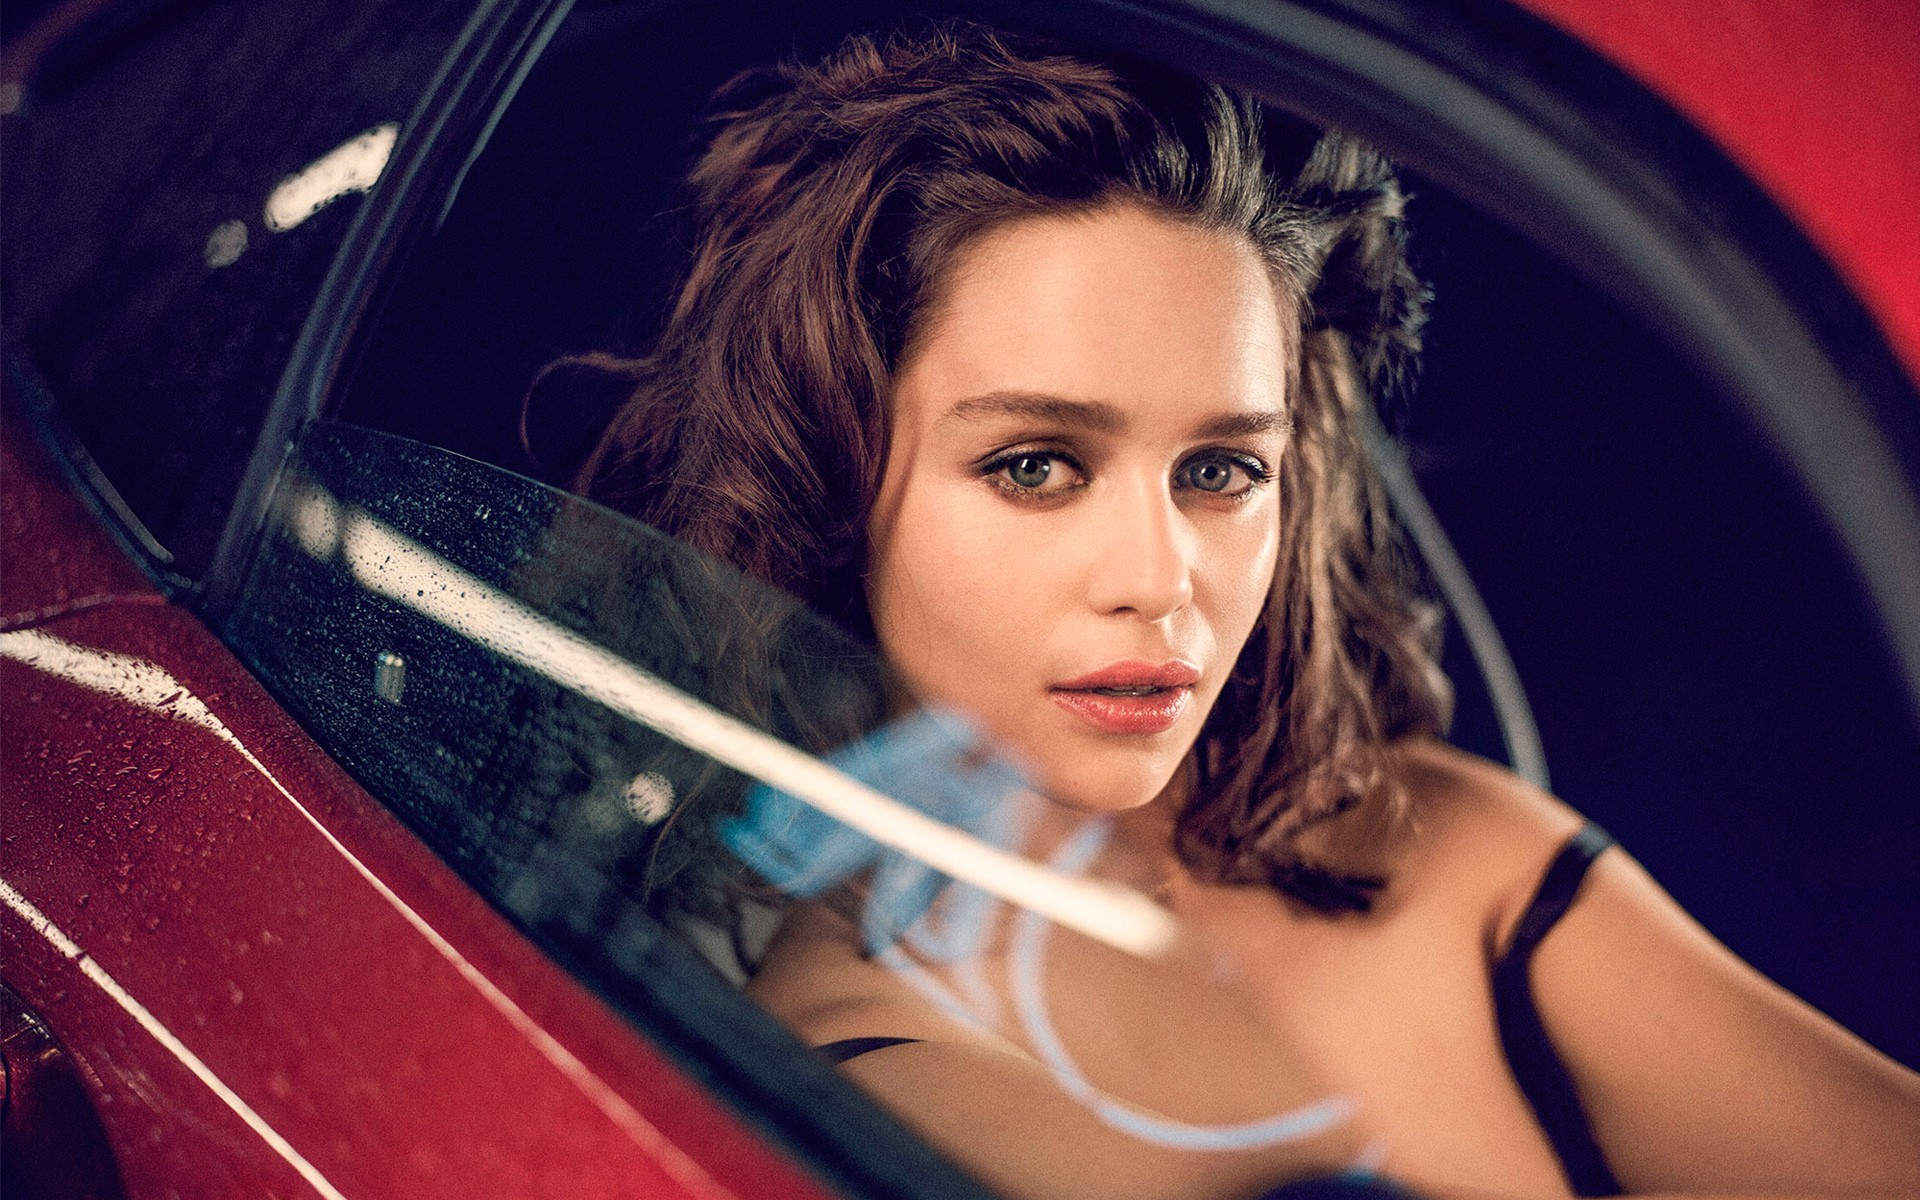 Top 10 beautiful women in the World, Emilia Clarke